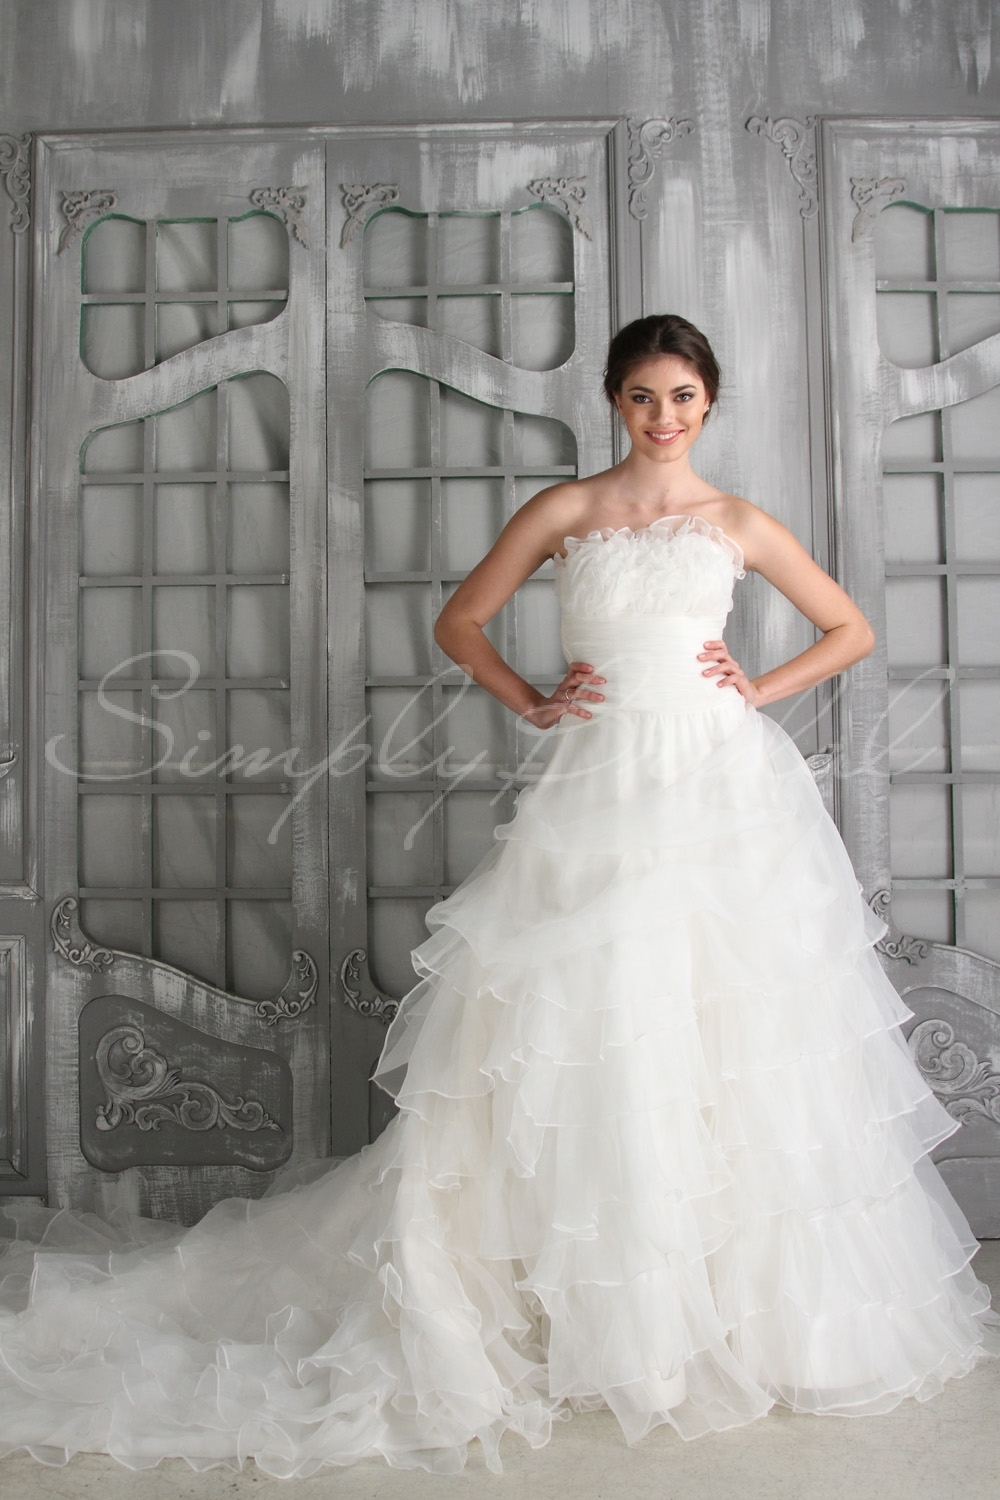 Places To Buy Bridesmaid Dresses In Raleigh Nc